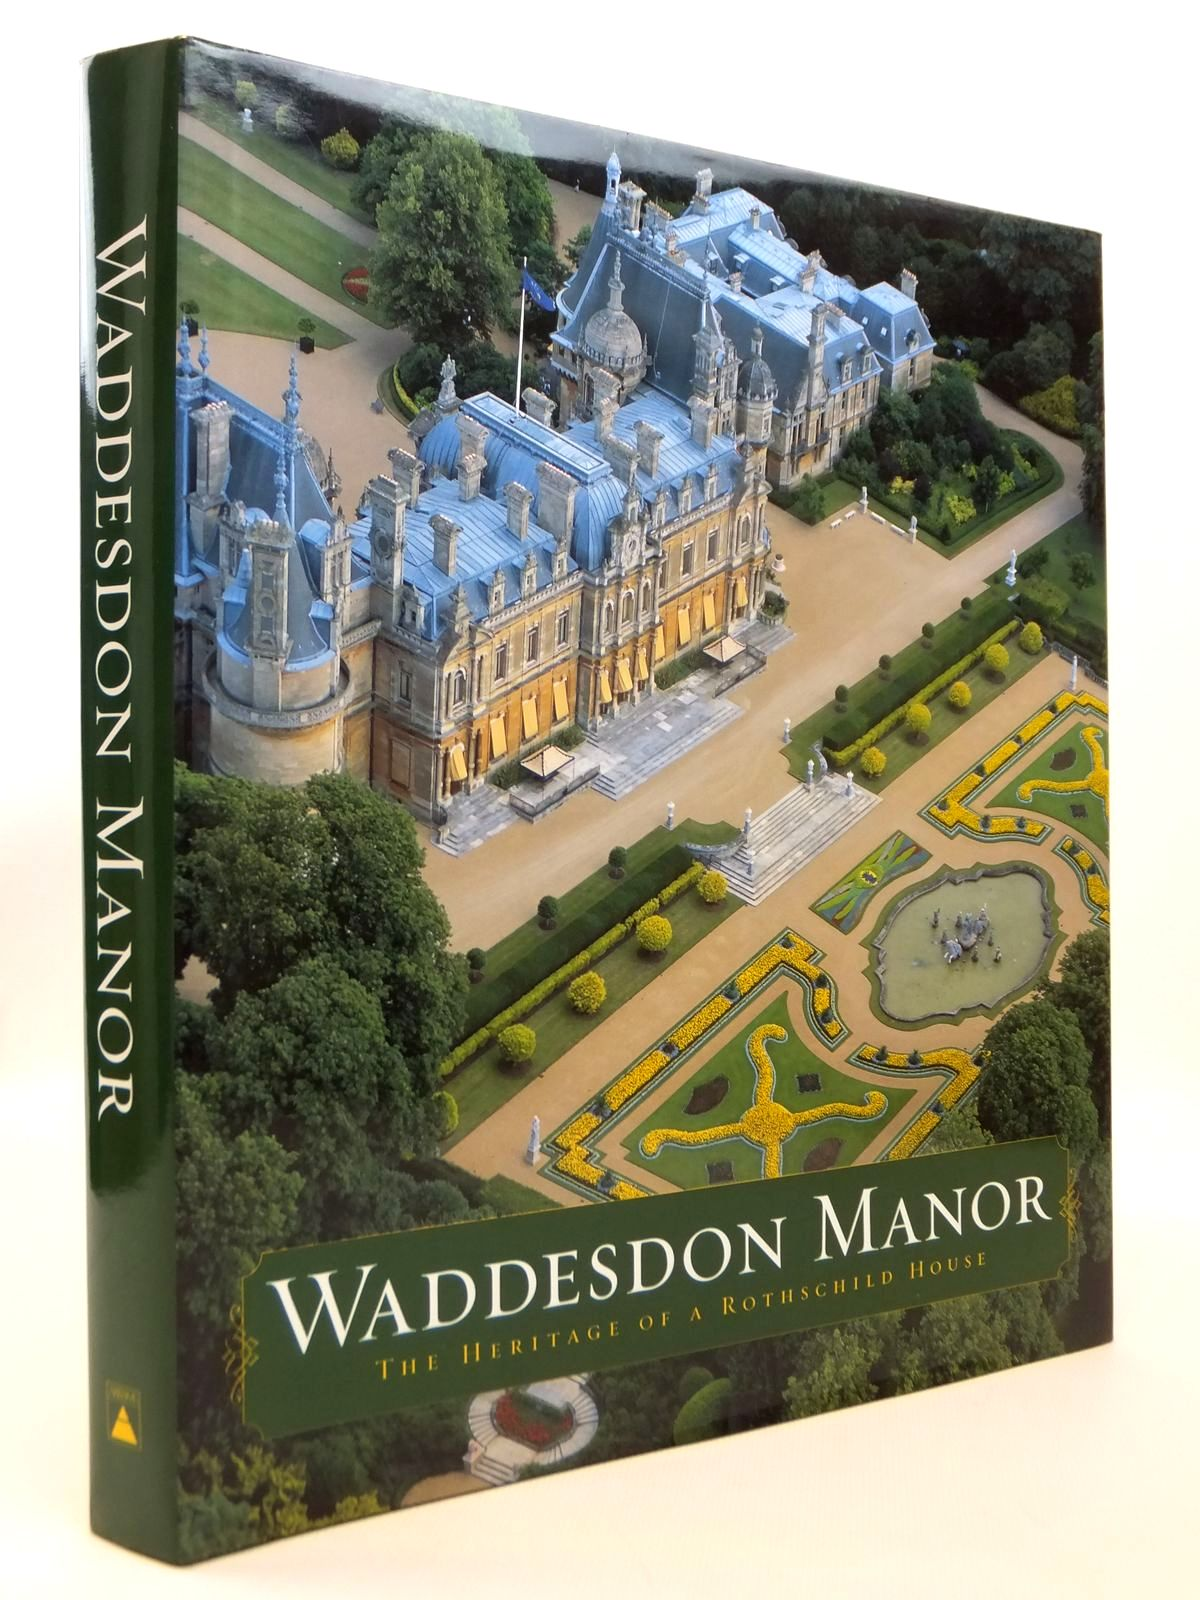 Photo of WADDESDON MANOR THE HERITAGE OF A ROTHSCHILD HOUSE written by Hall, Michael published by Harry N. Abrams, Inc. (STOCK CODE: 1812584)  for sale by Stella & Rose's Books